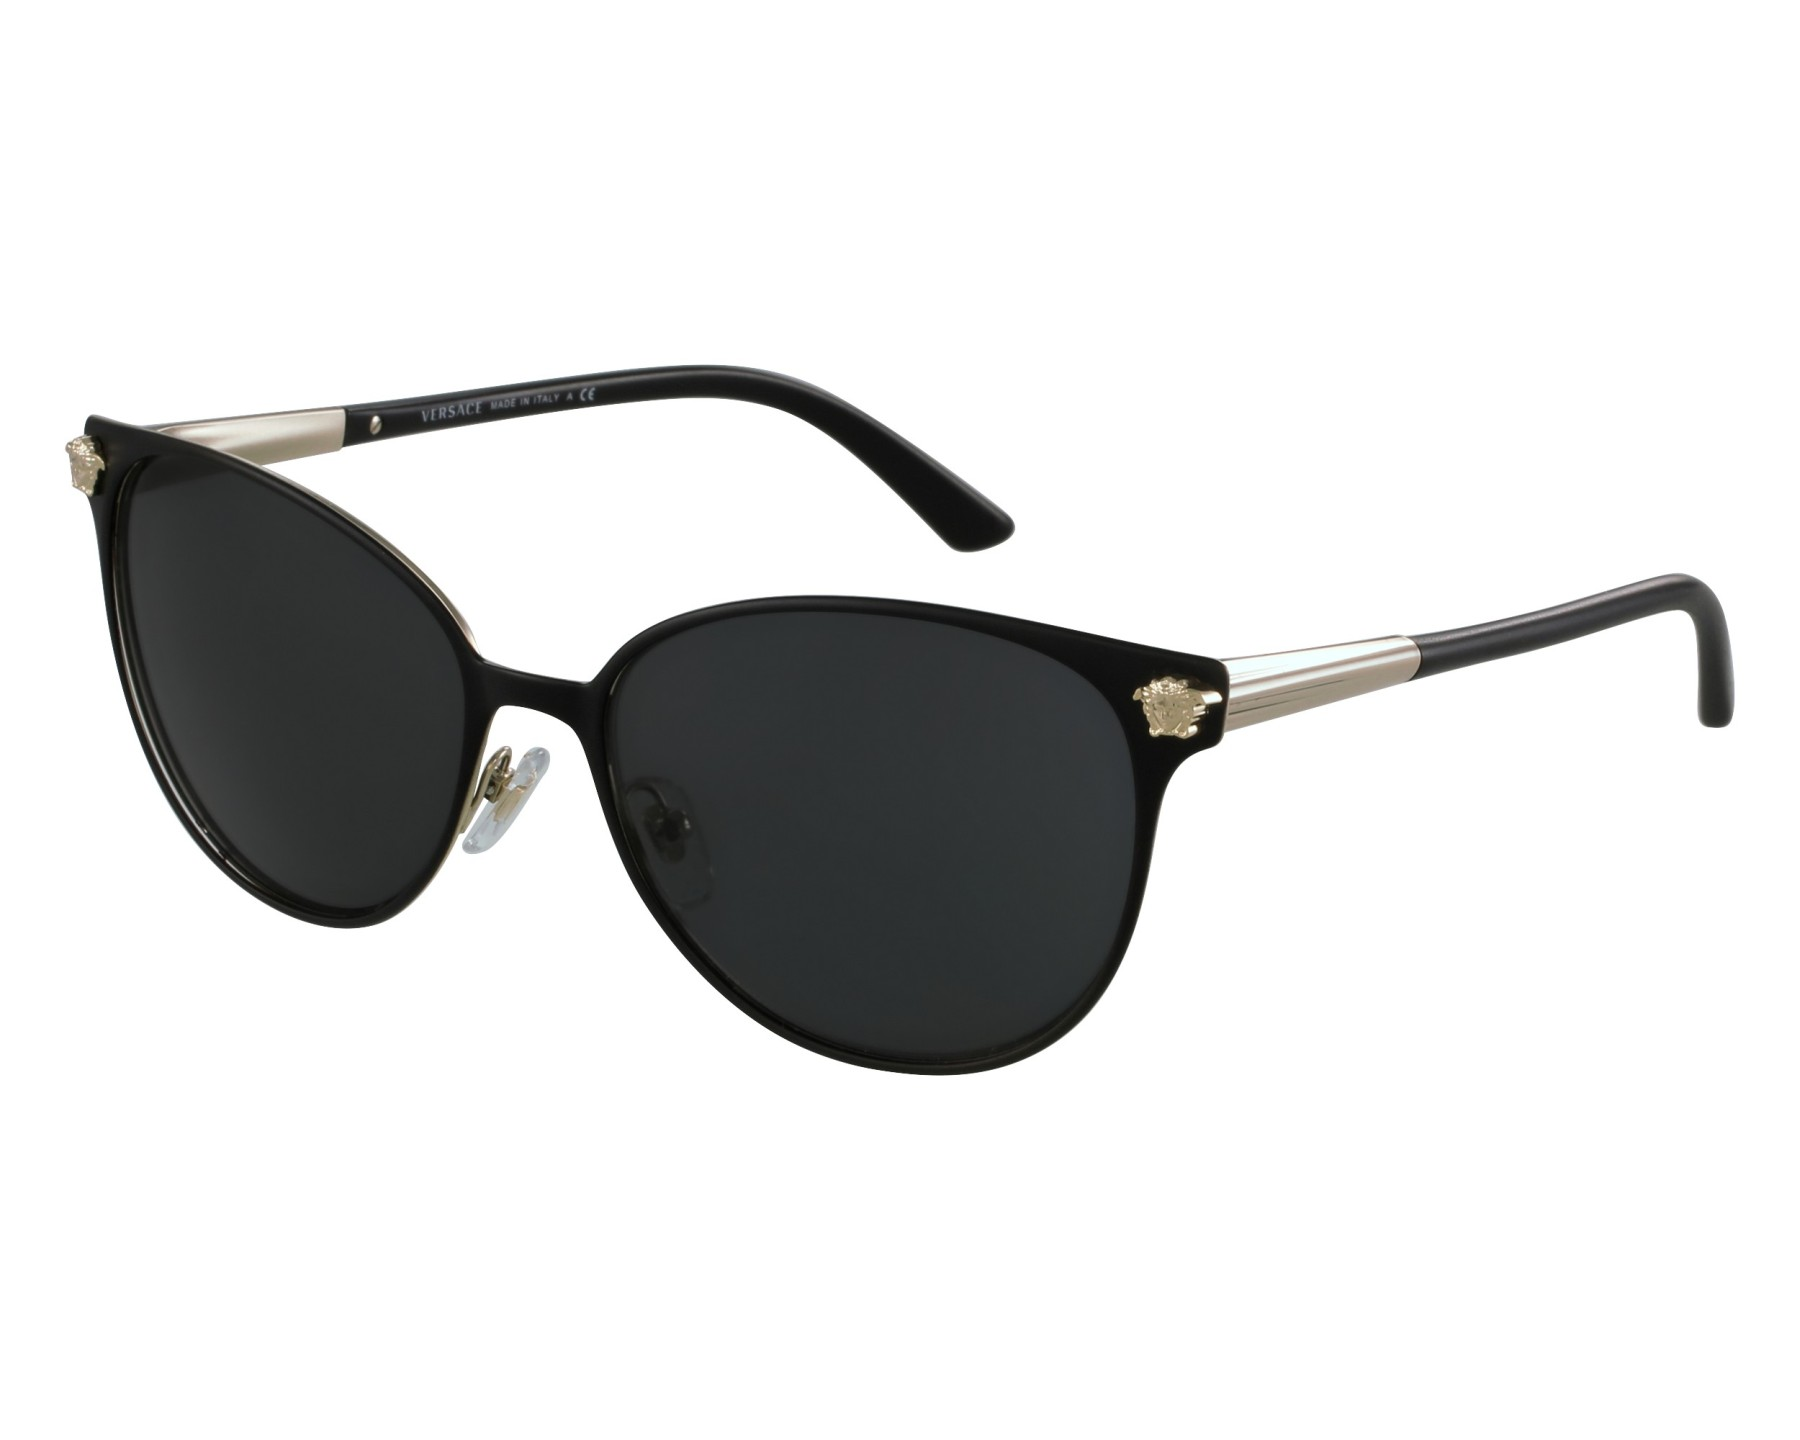 ea70db167842 Sunglasses Versace VE-2168 1377/87 57-16 Black Gold front view